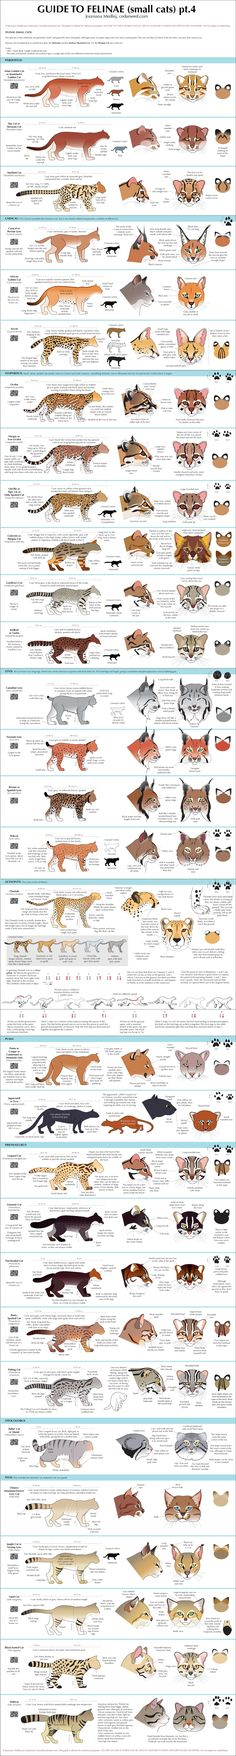 Guide to felinae (small cats), pt. 4 by Majnouna | #cat #gato #crazycatlady #ilustração #illustration #felinos #bigcats #mothernature #mãenatureza